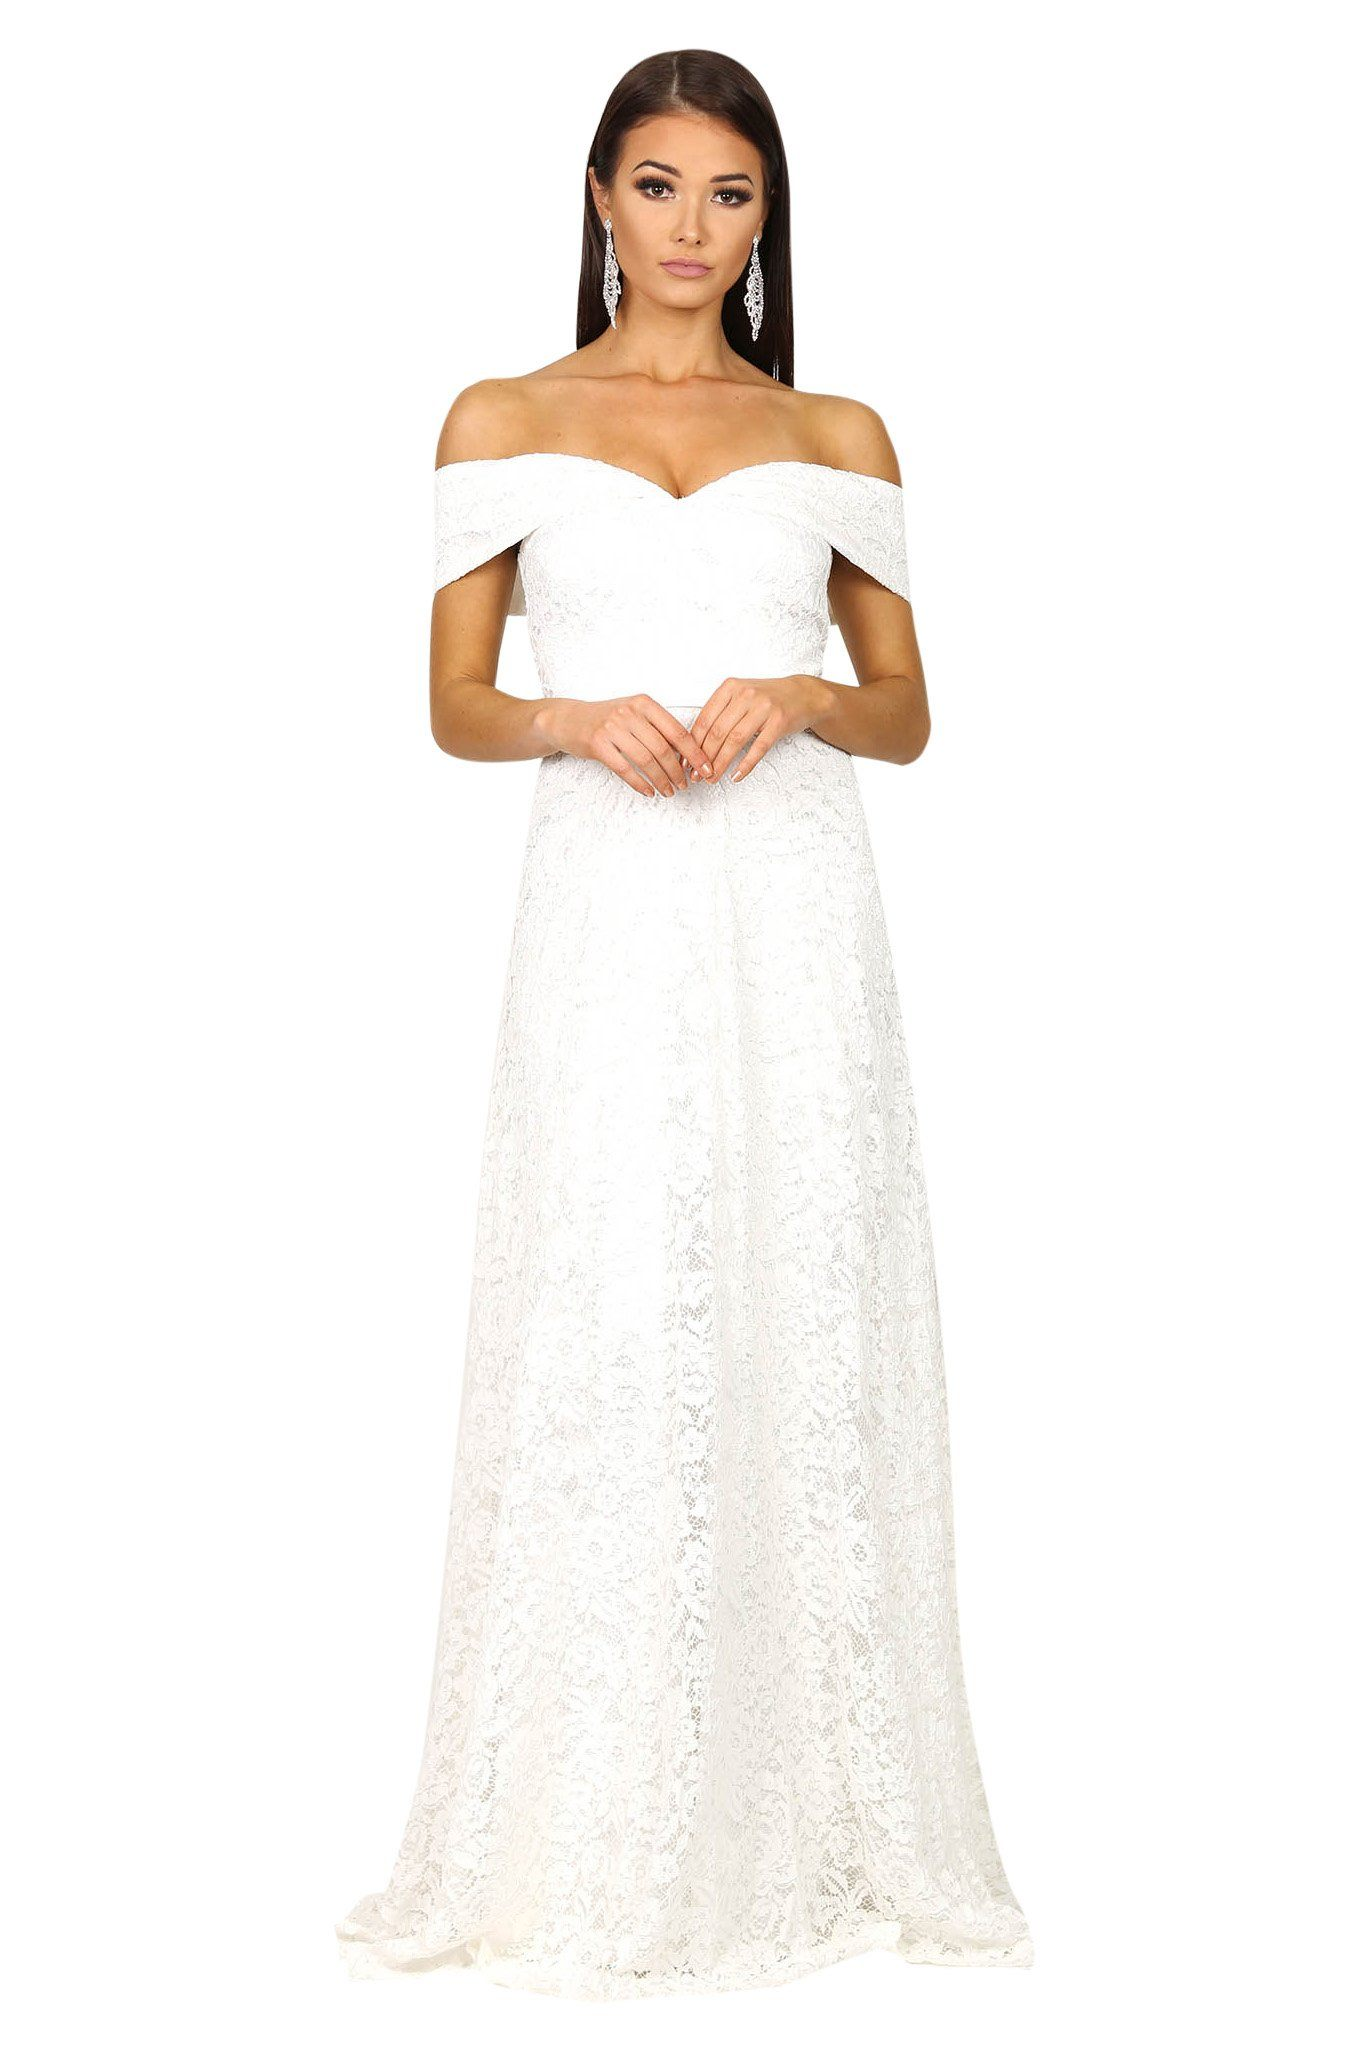 White lace off the shoulder floor length A-line gown with sweetheart neckline and satin belt